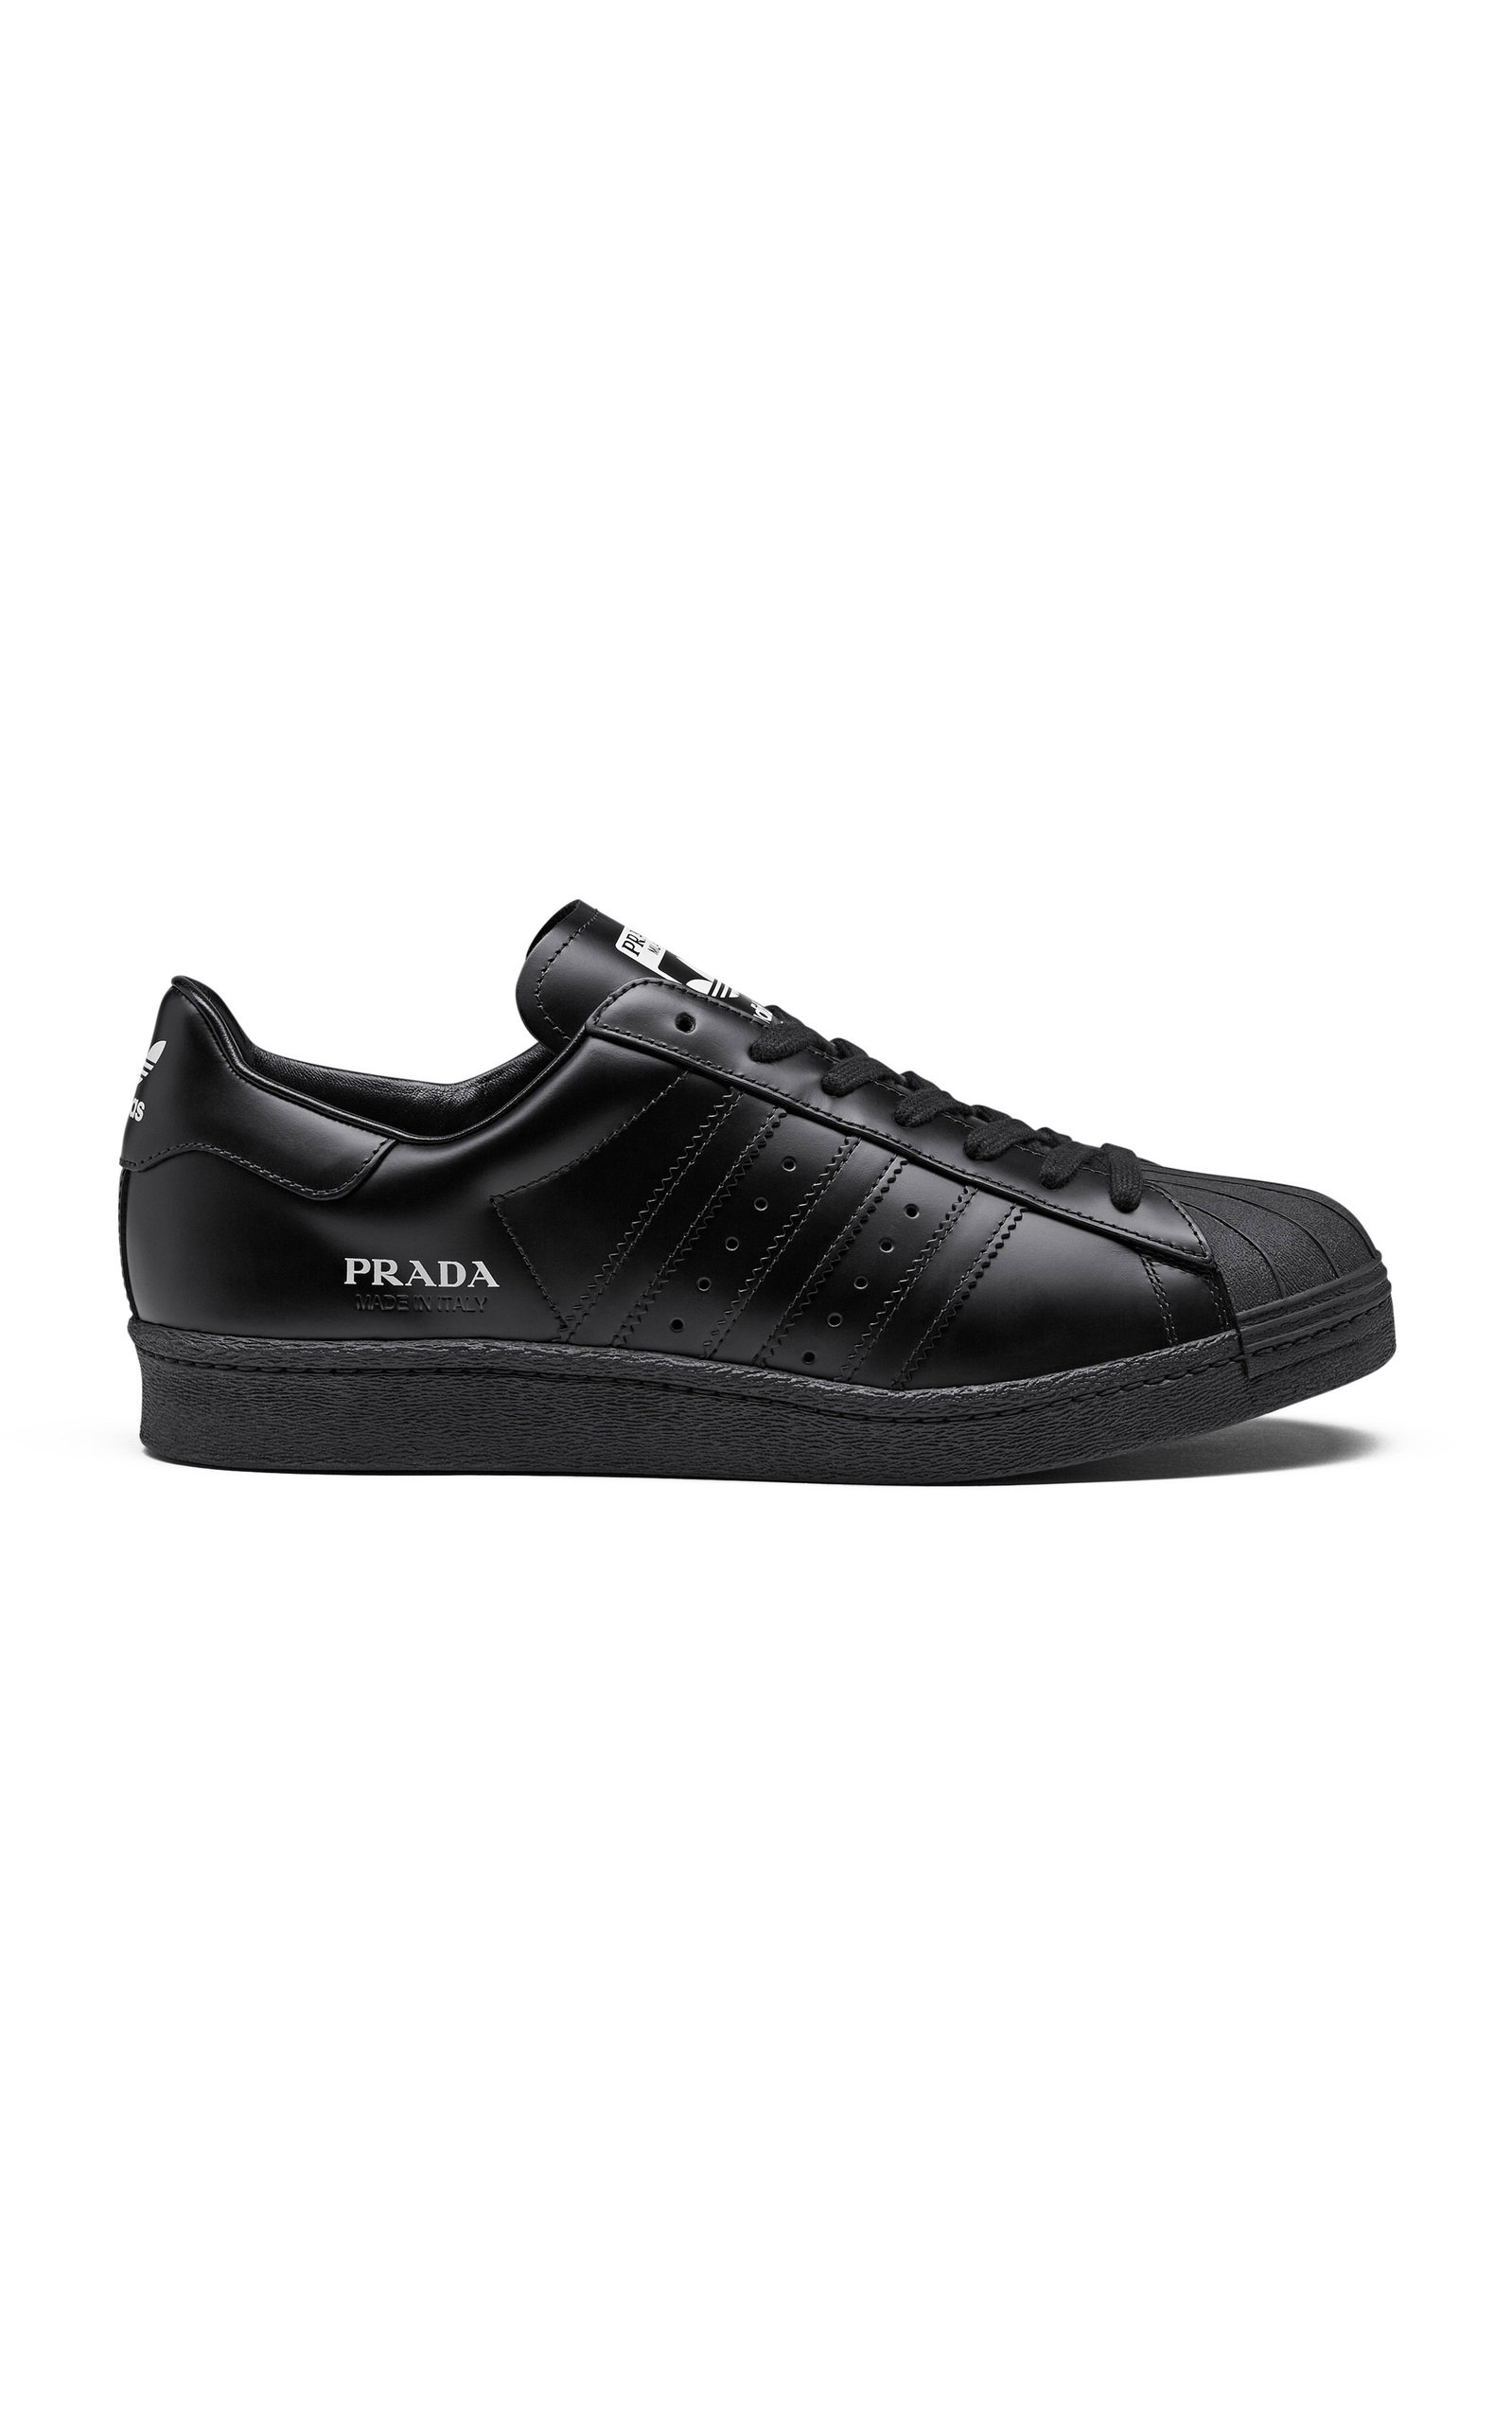 Adidas X Prada SUPERSTAR LEATHER SNEAKERS